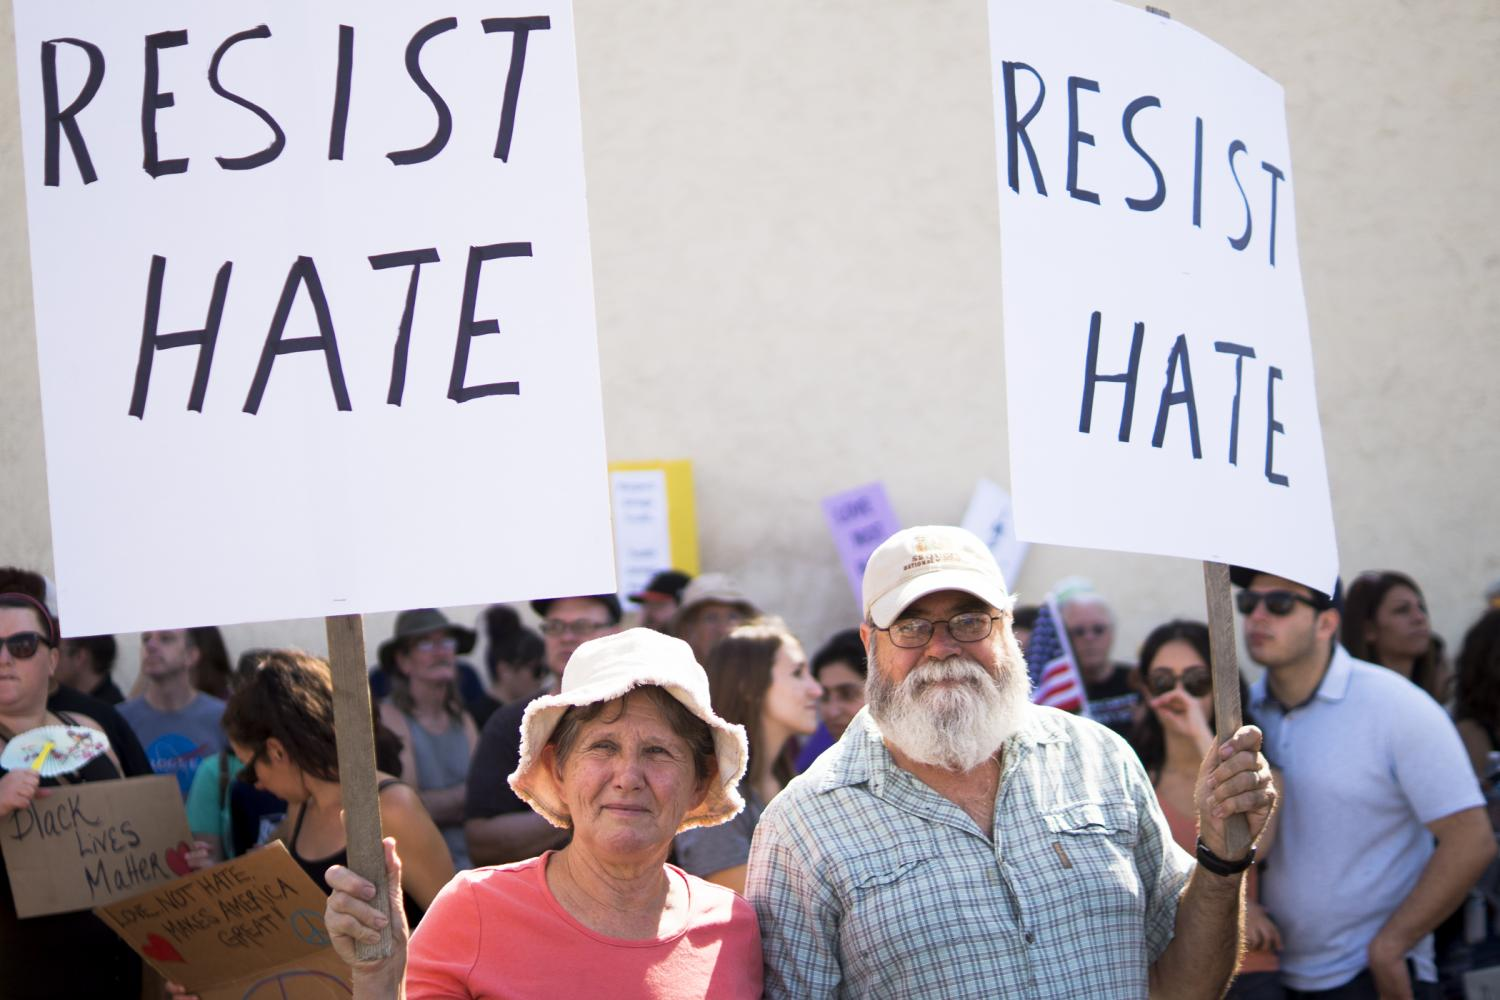 Eve and Ken Hudson show their support against hate during the Counter Rally Against Hate in Fresnos Tower District on Saturday, Aug. 26, 2017.